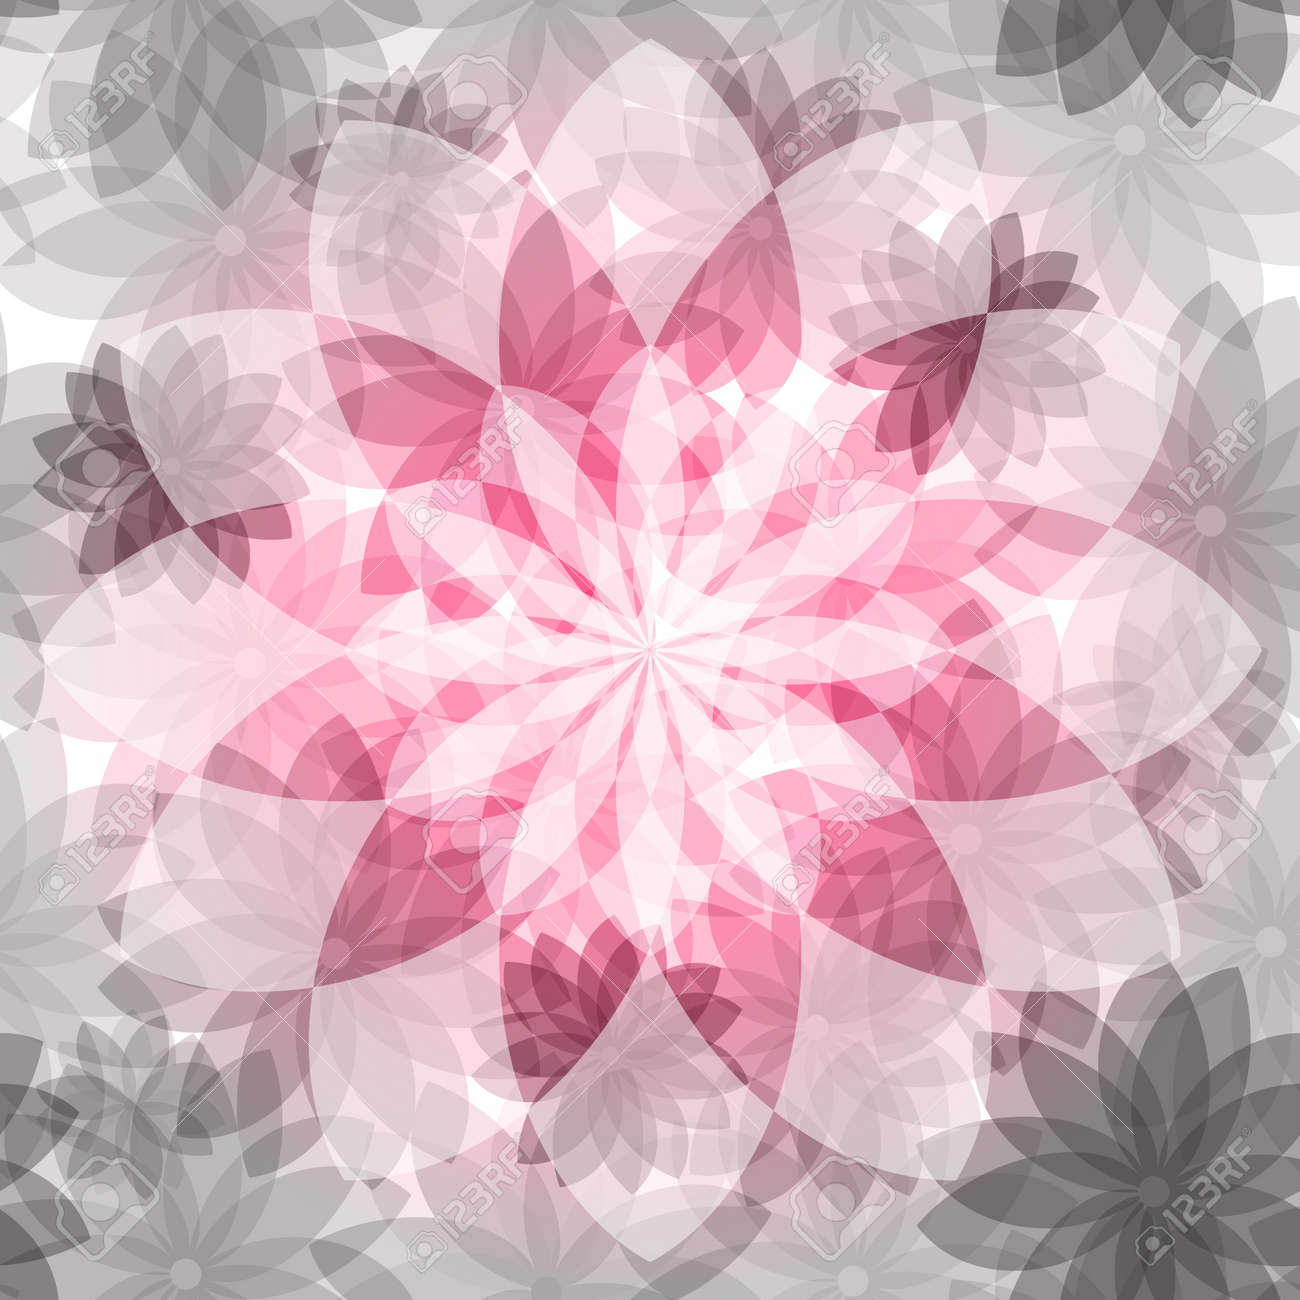 Pink-gray floral seamless pattern with transparent flowers Stock Vector - 21960987